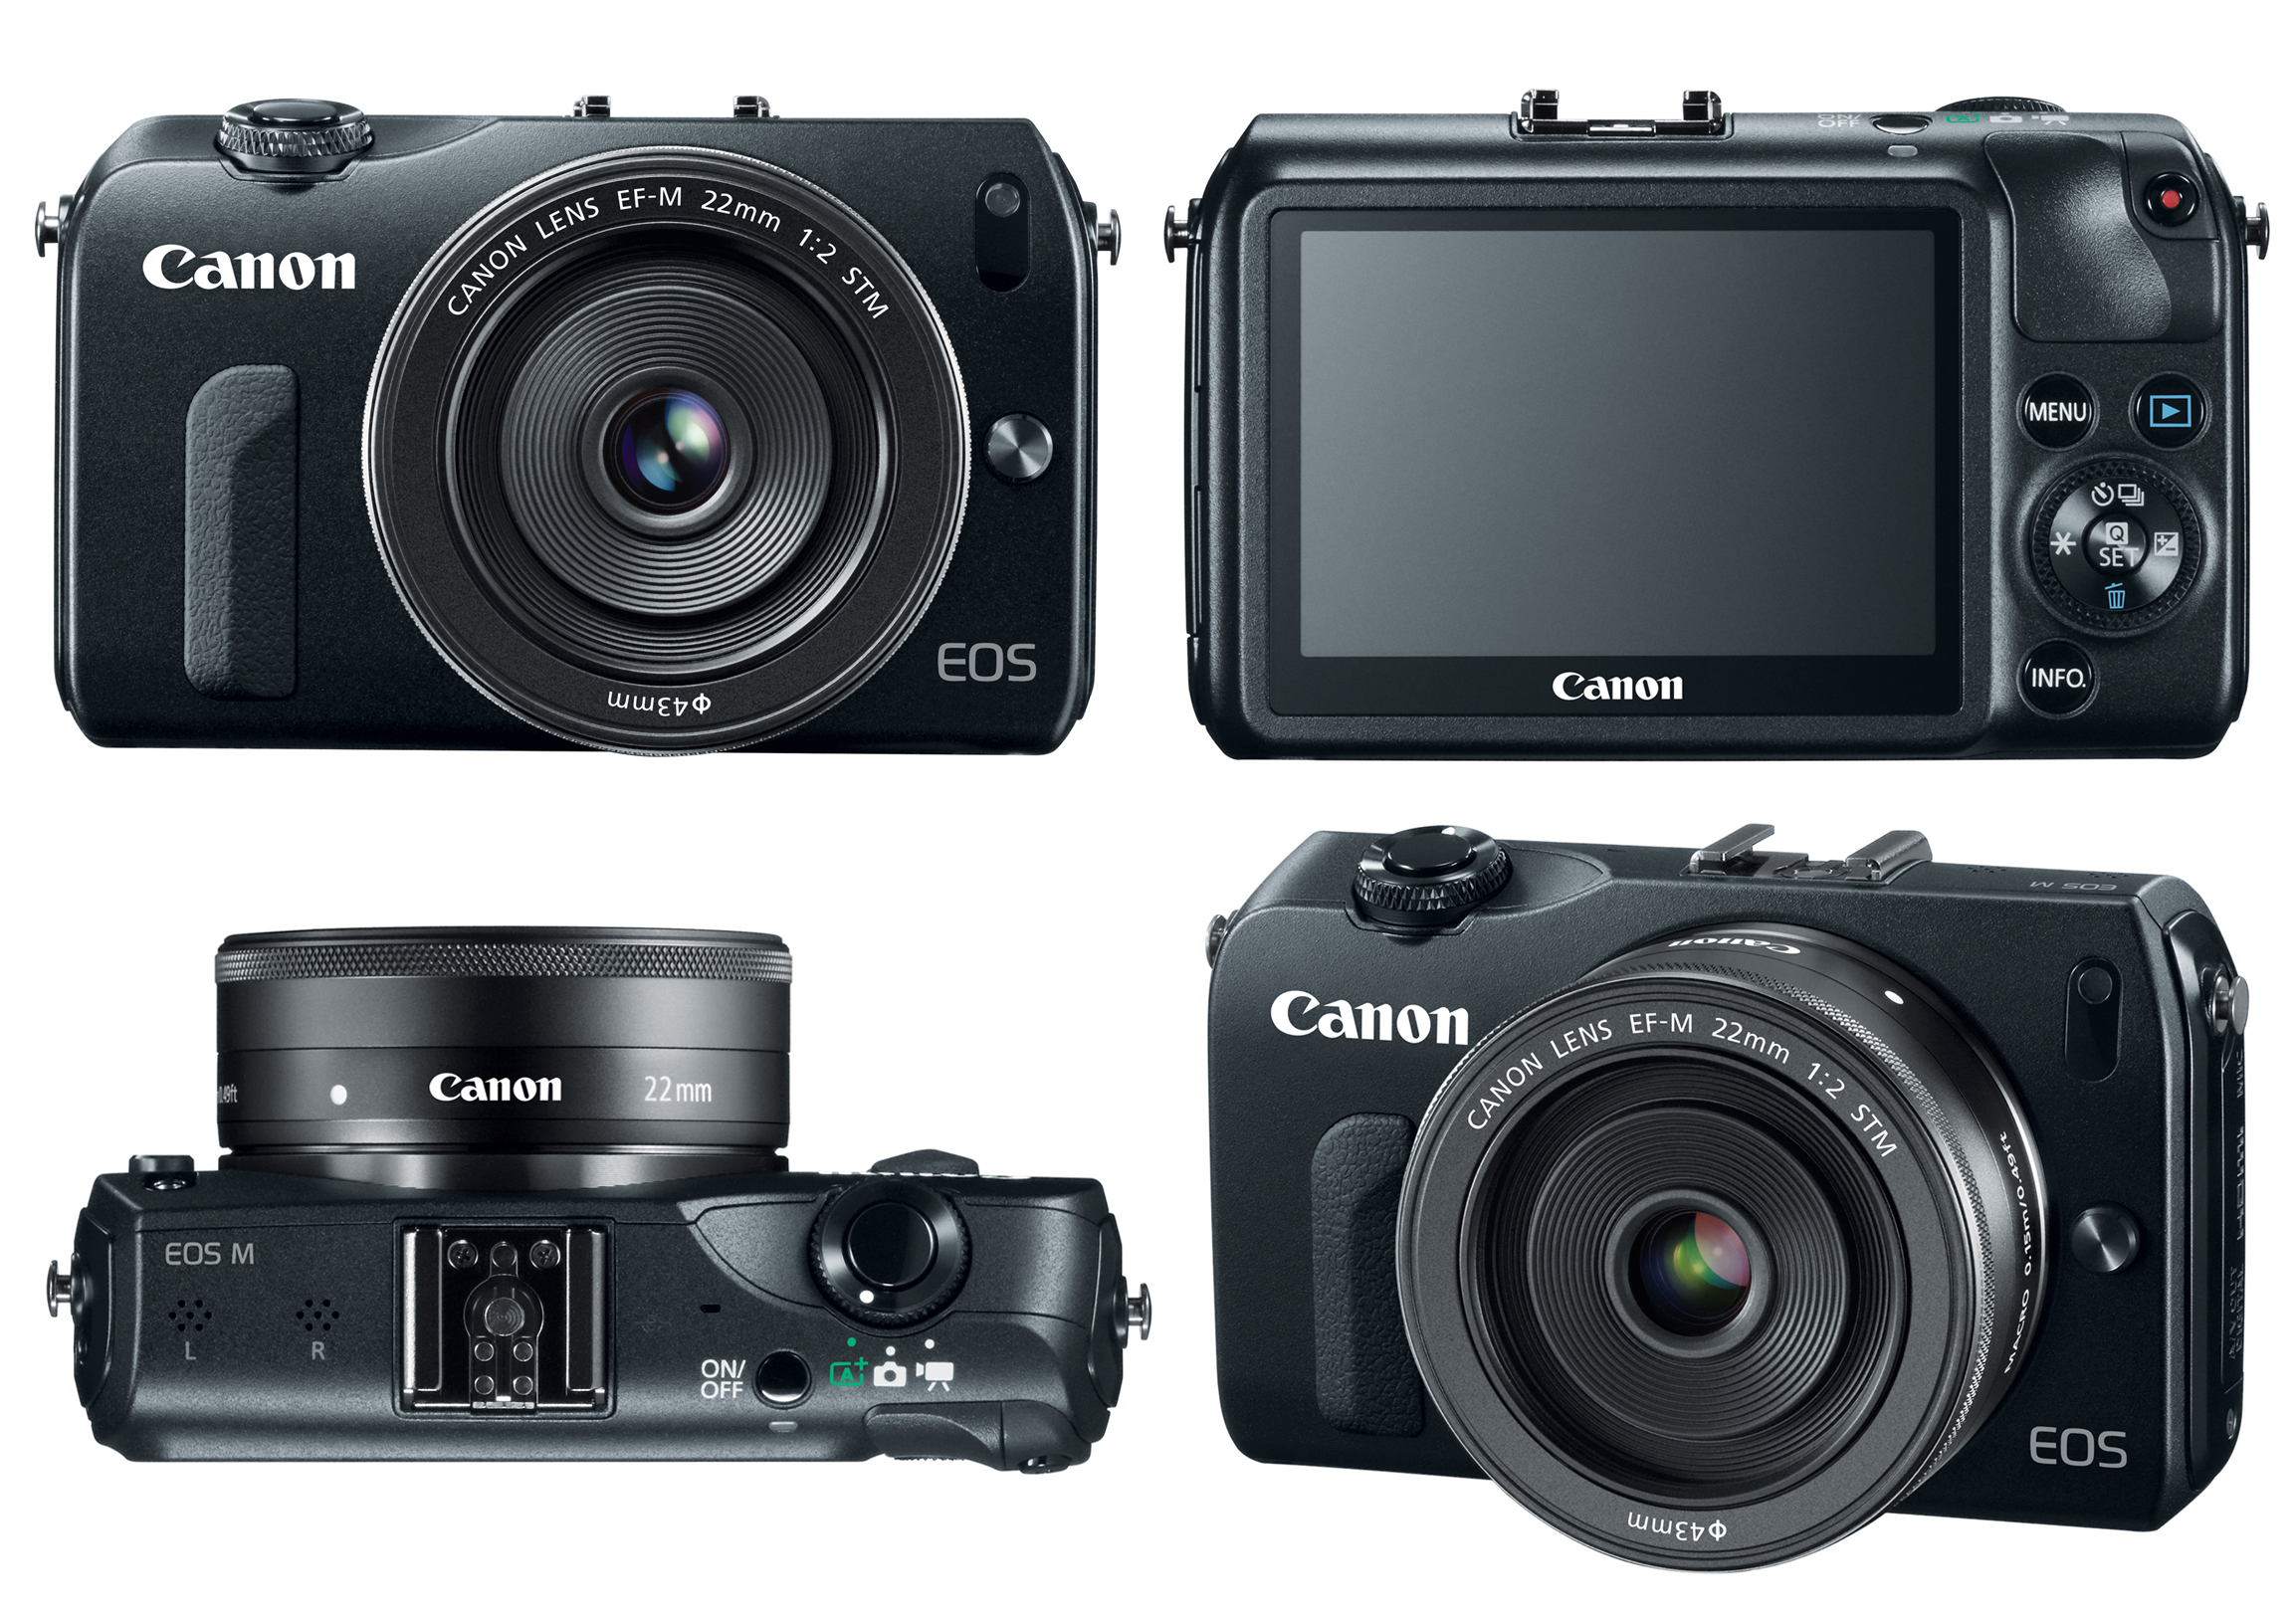 New Canon EOS M Digital Camera with interchangeable EF and M lenses